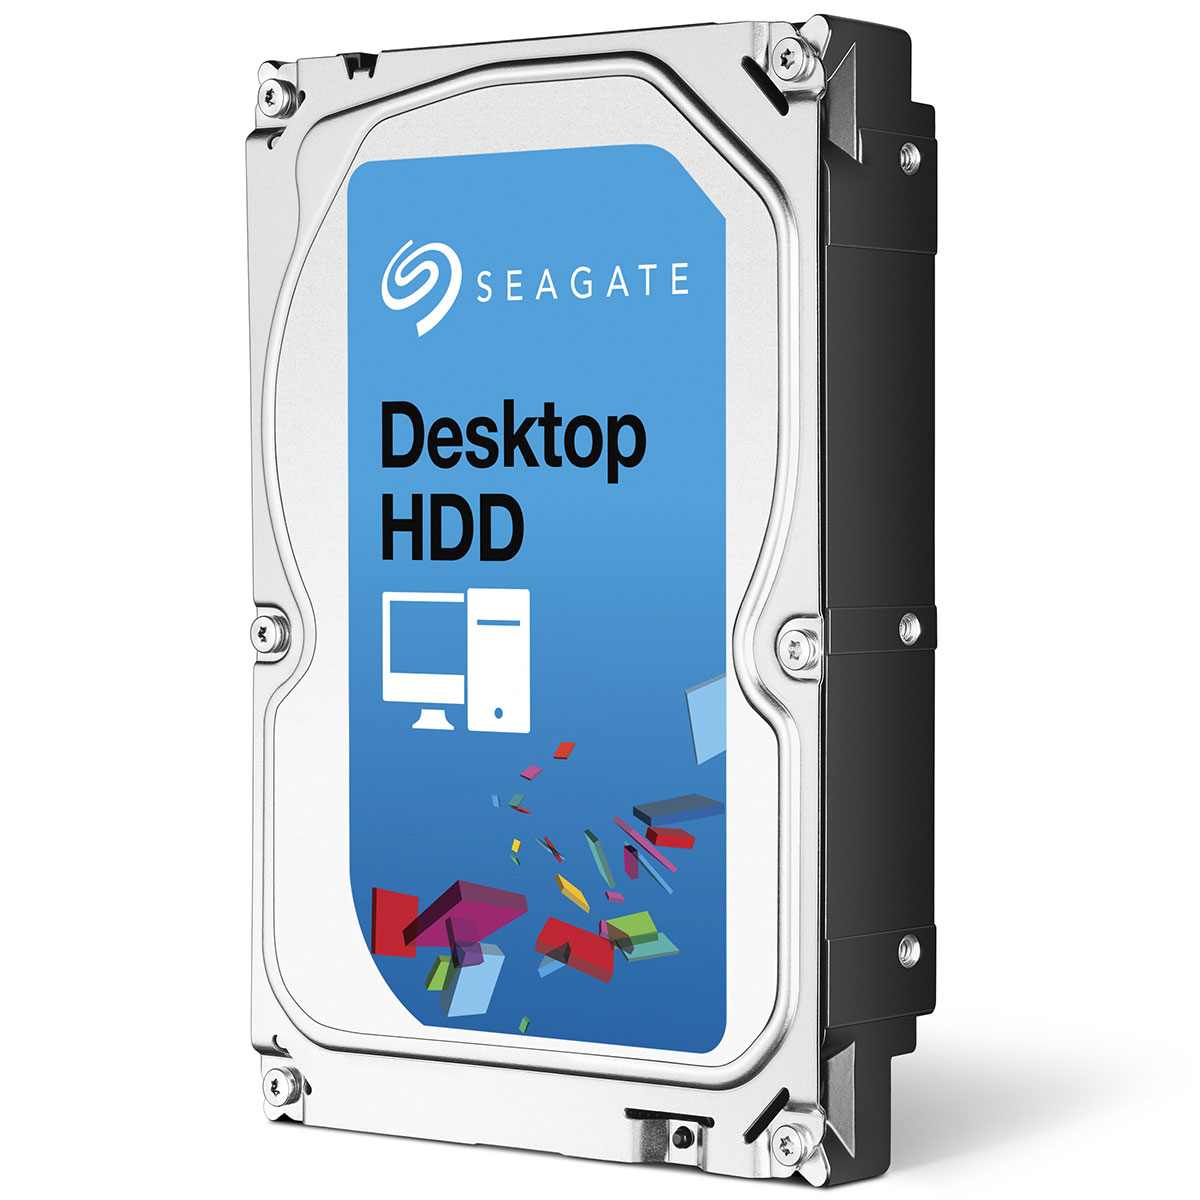 "Seagate ST1000DM003 Barracuda Disque dur interne 3,5"" SATA III 7200 tours/min 1 To 1000G/5900RPM/64M/ SATA 6Gb/s"